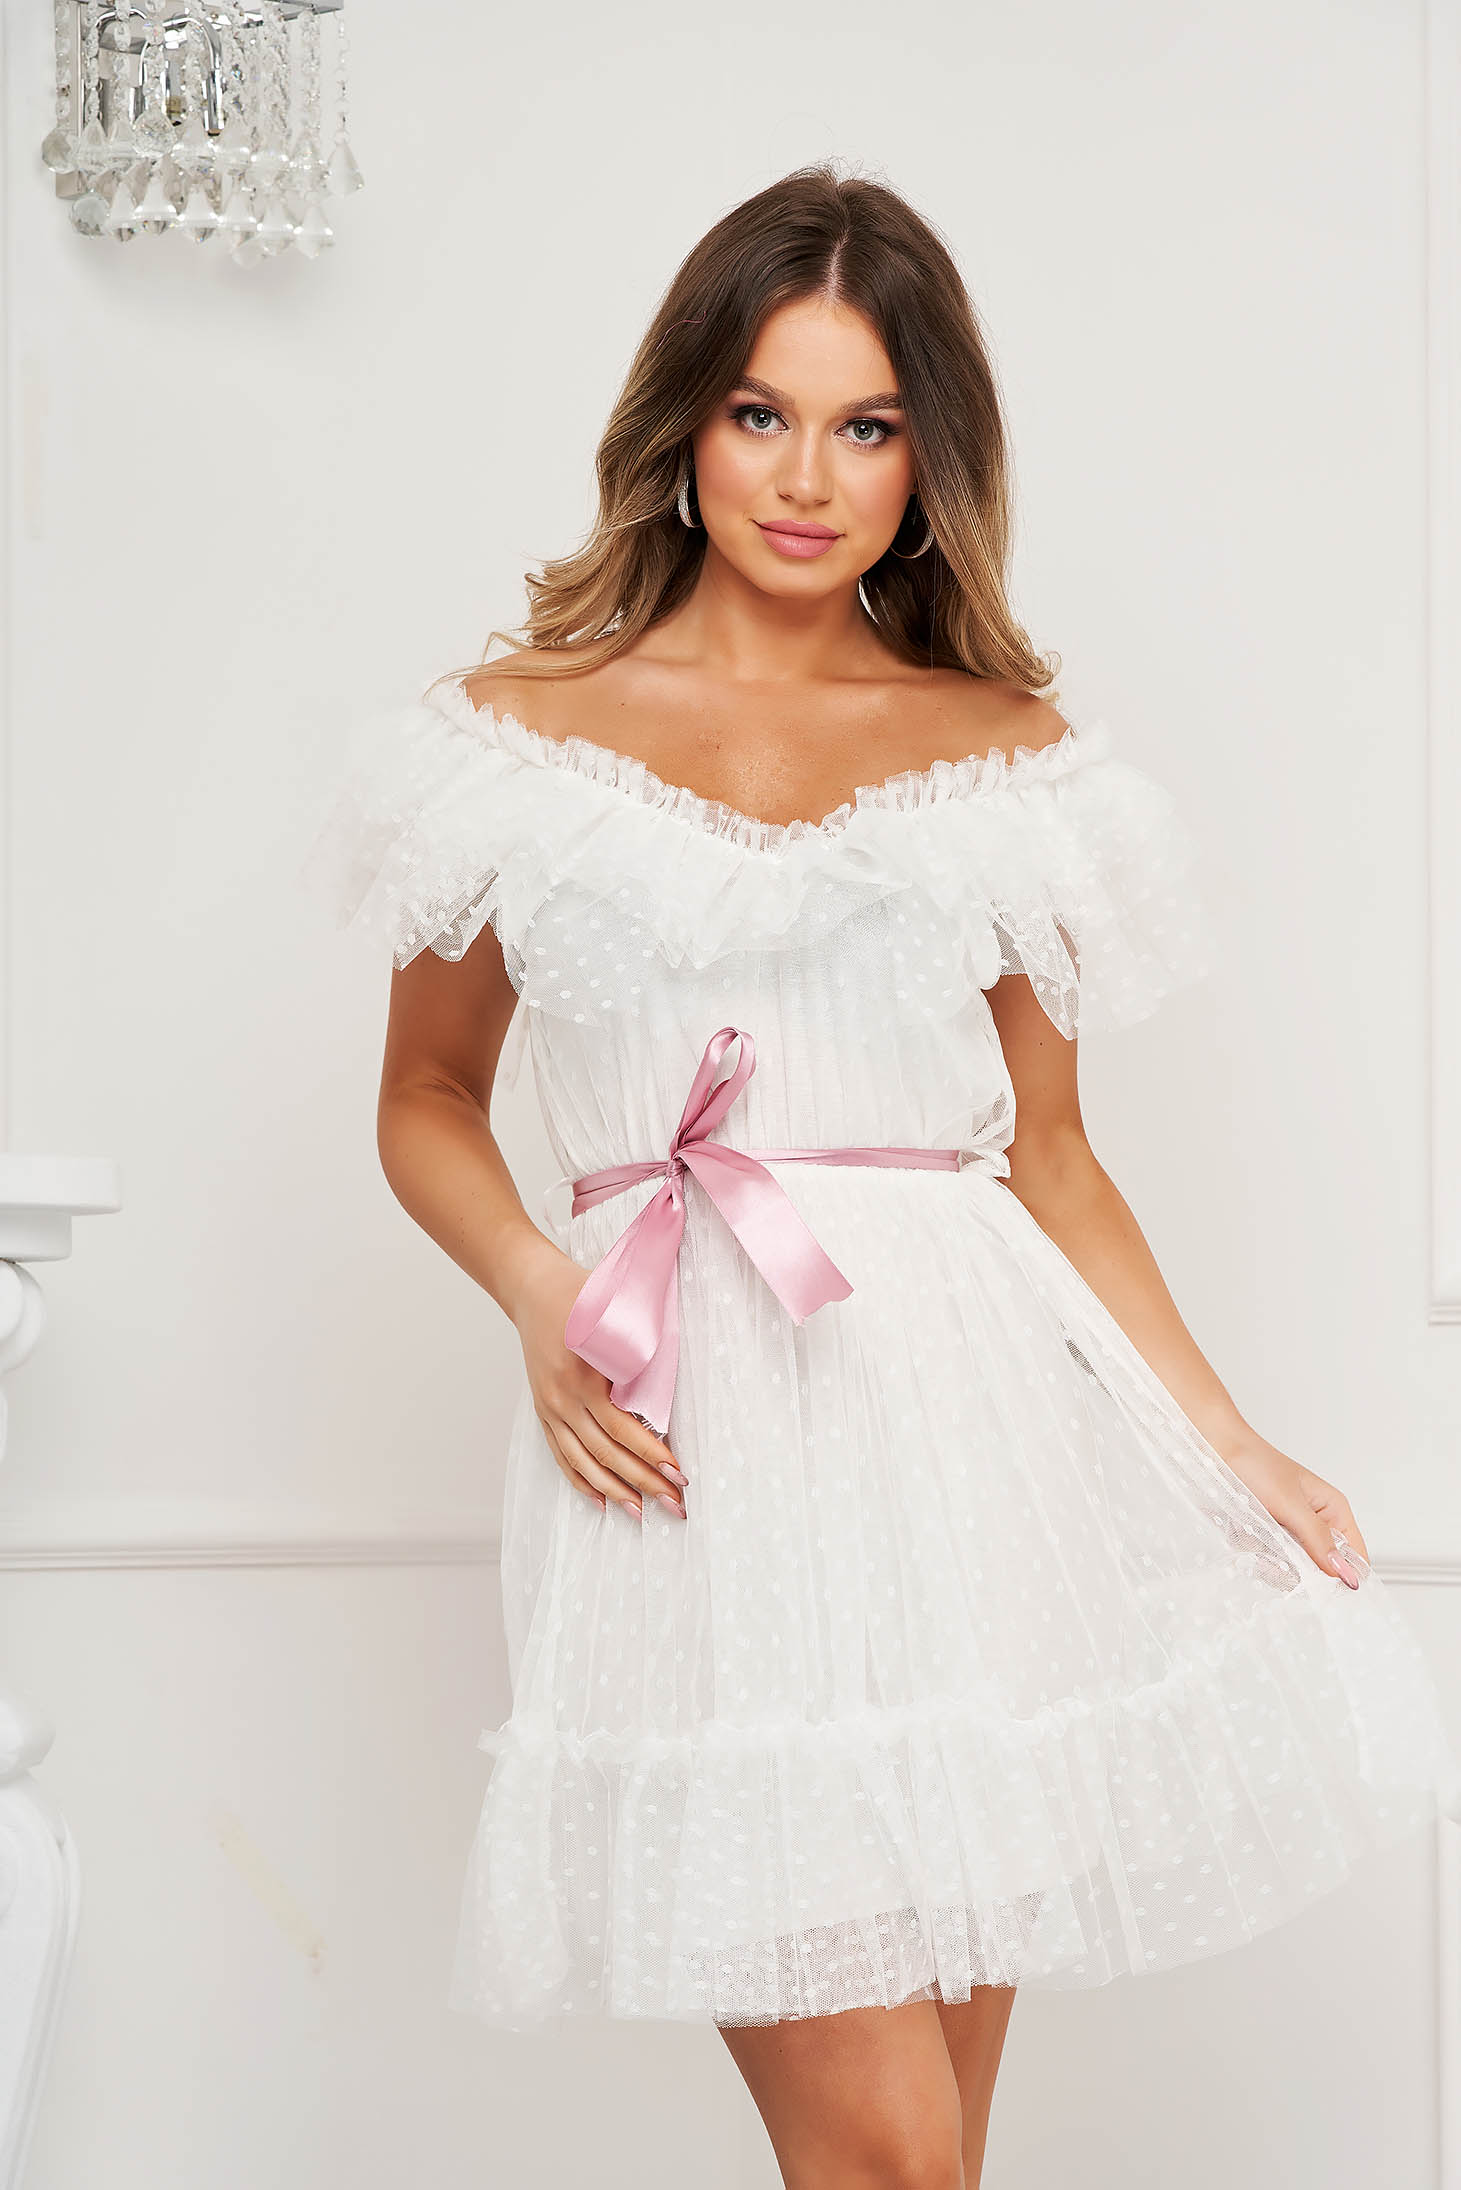 White dress from tulle cloche with elastic waist plumeti on the shoulders accessorized with tied waistband occasional